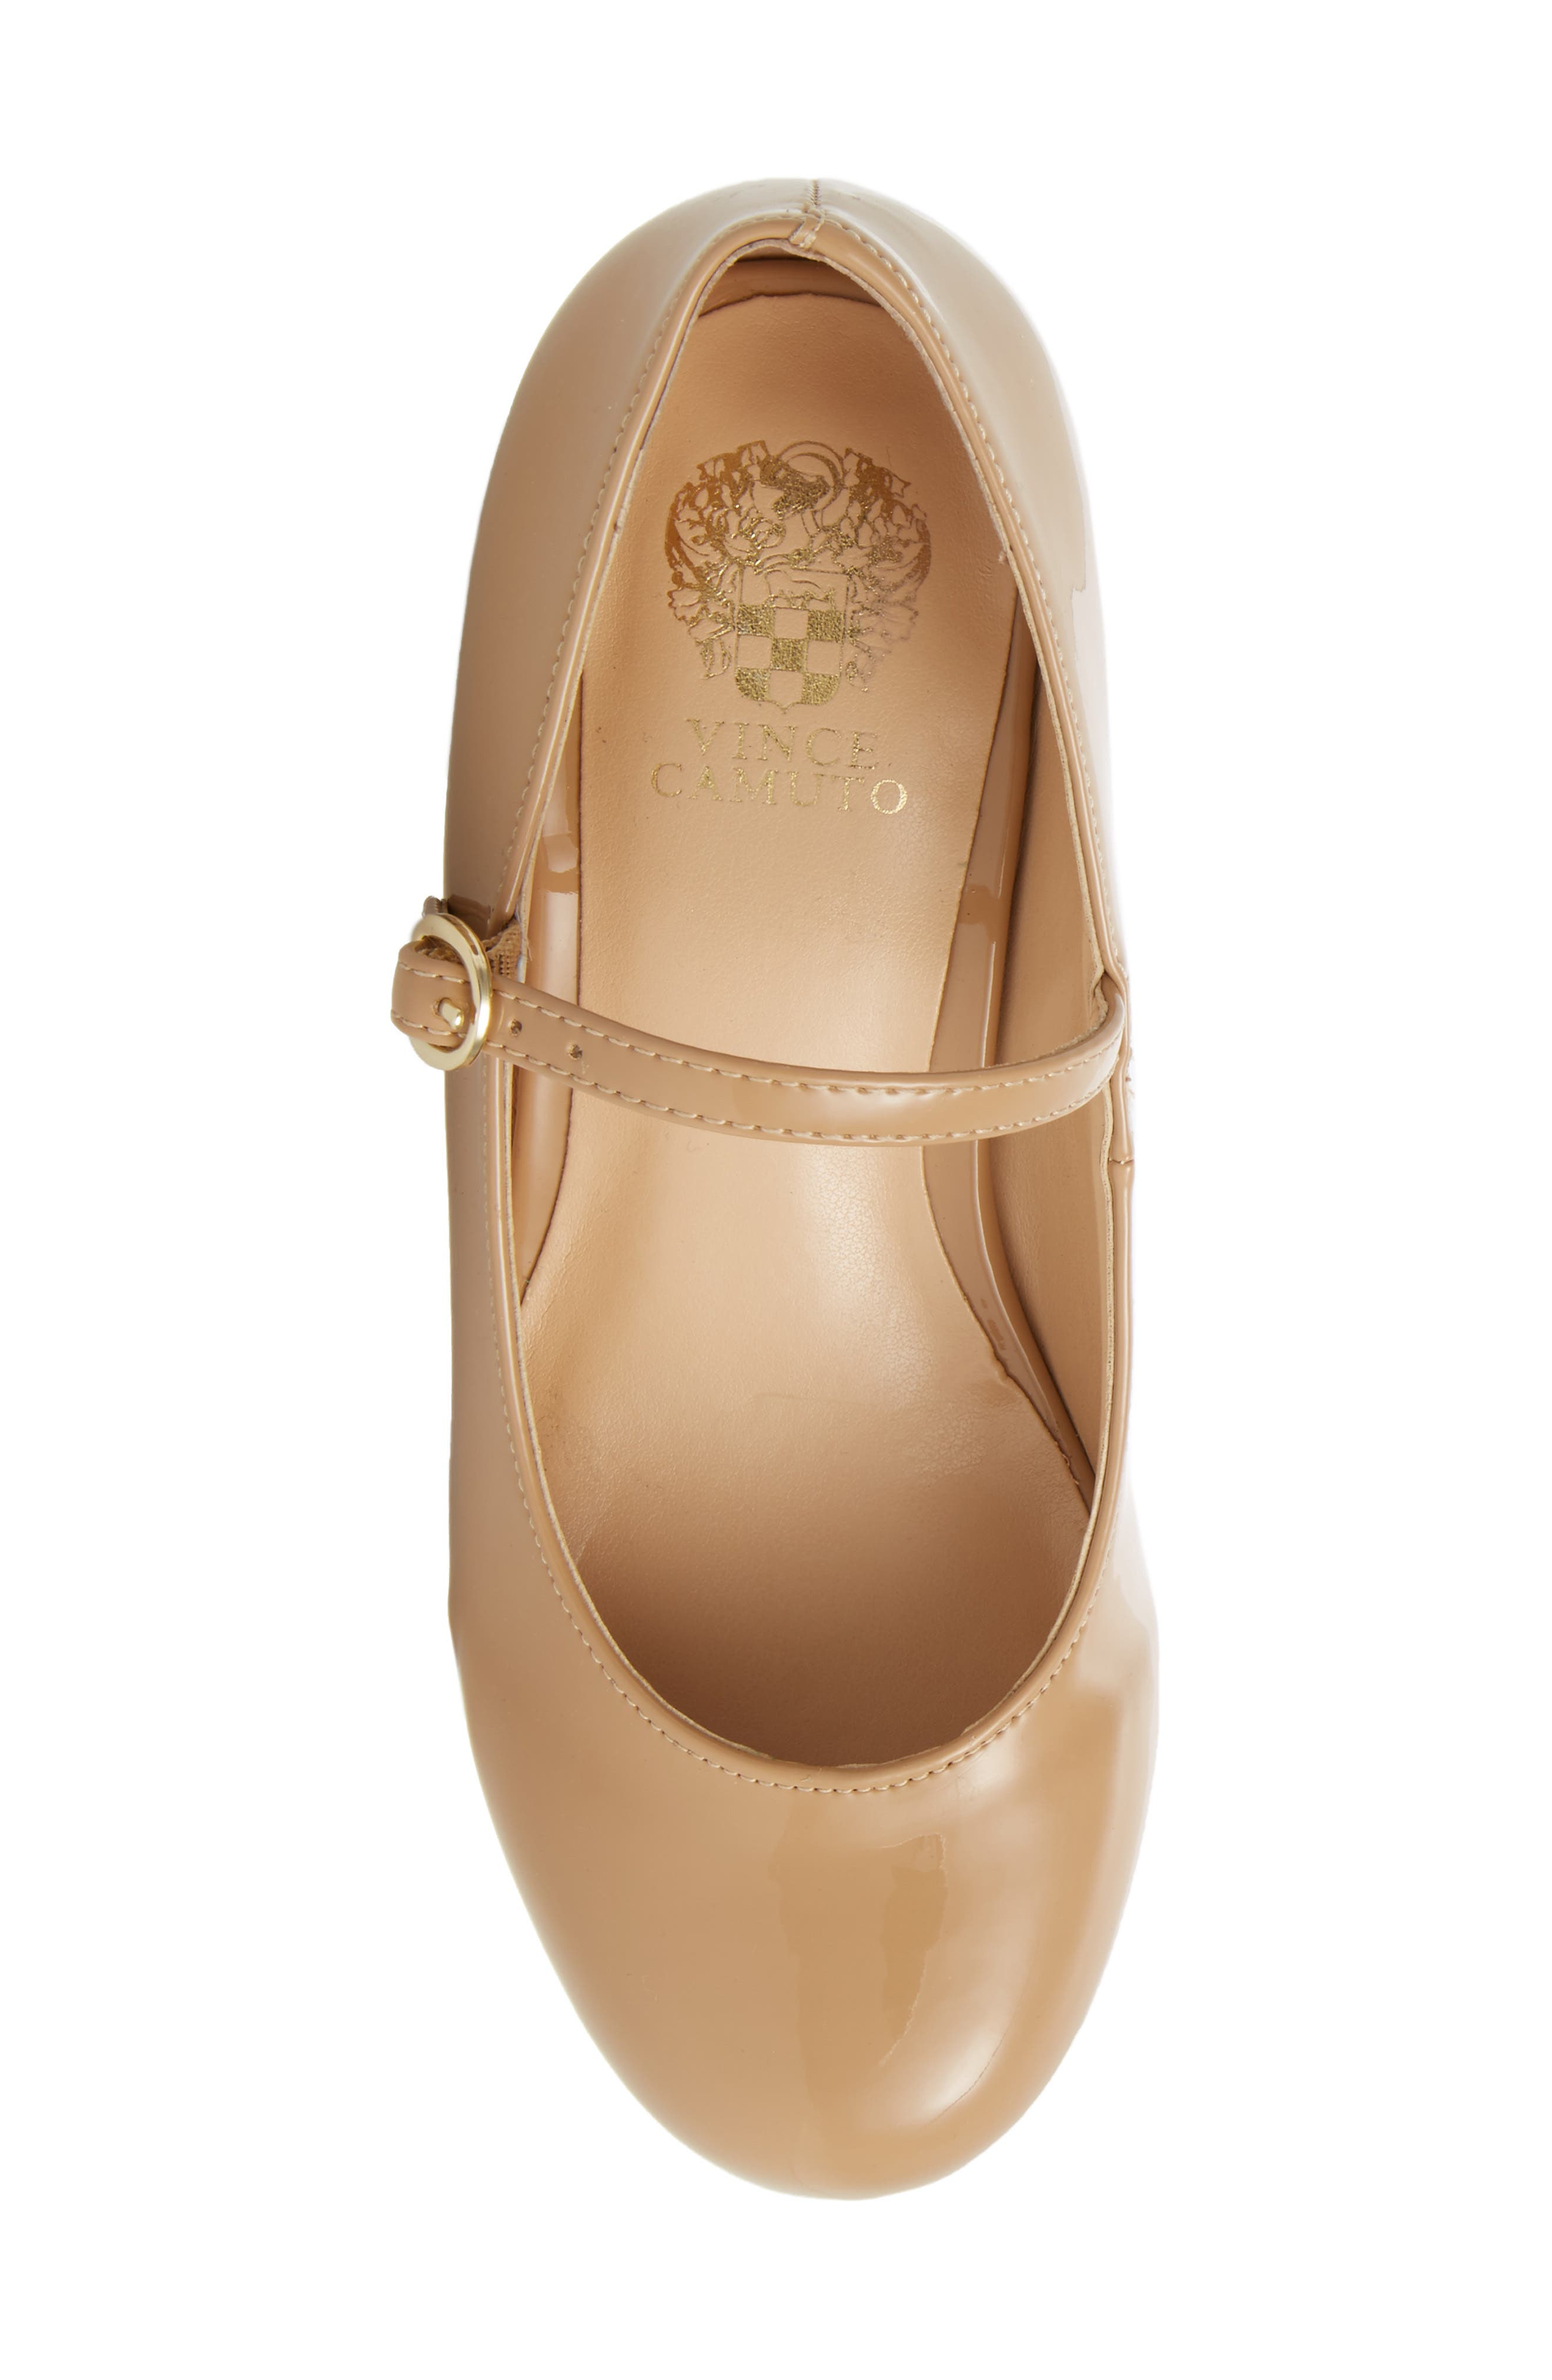 Brenna Mary Jane Pump,                             Alternate thumbnail 4, color,                             NUDE PATENT